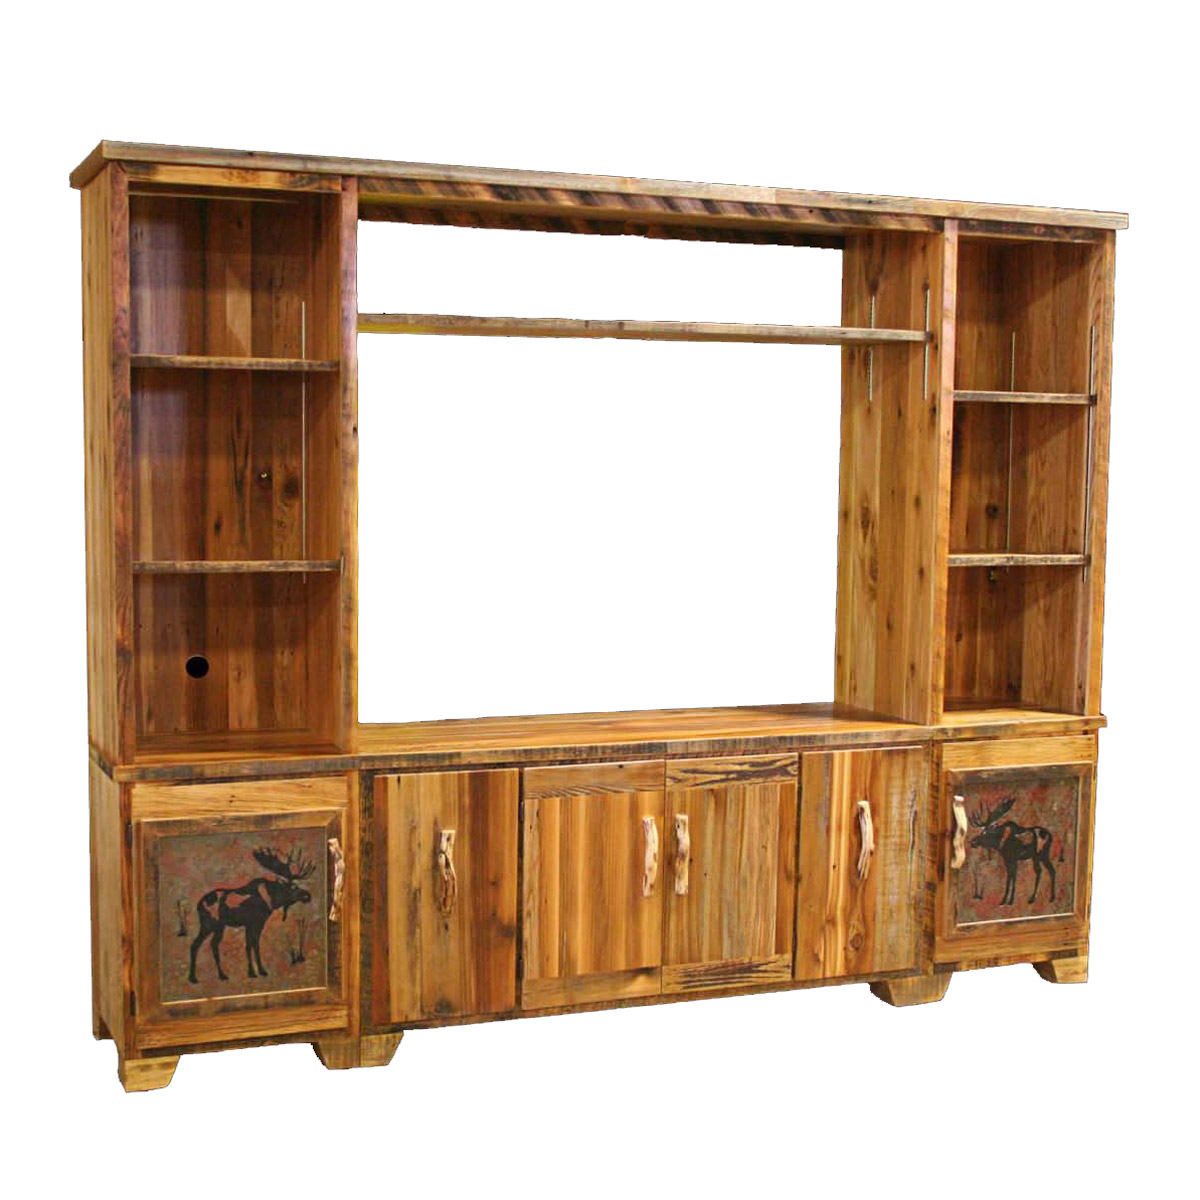 Black Forest Decor Barnwood extra large entertainment cen...